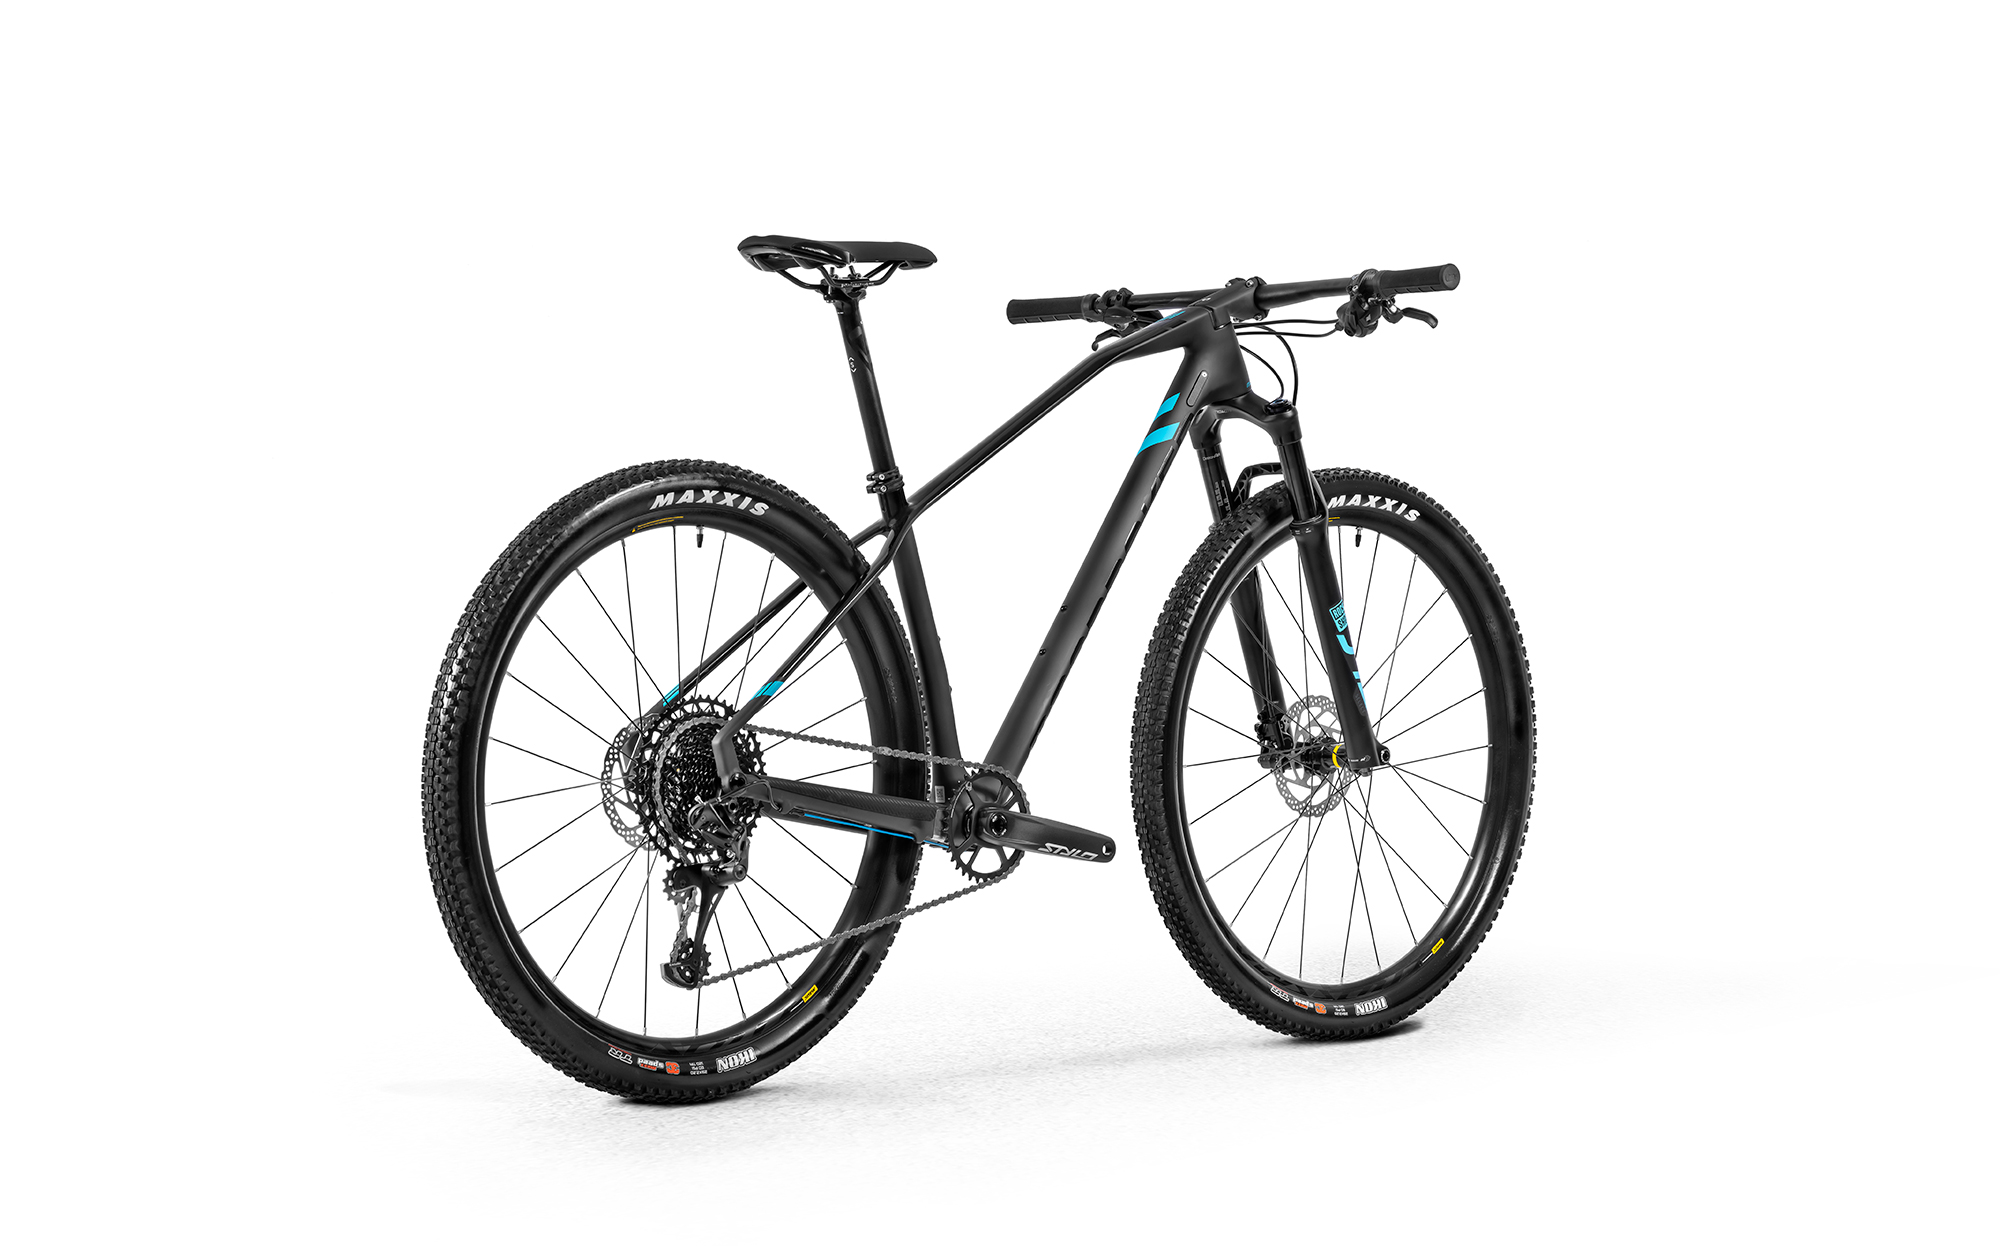 Horské kolo Mondraker Podium Carbon, black phantom/light blue, 2020